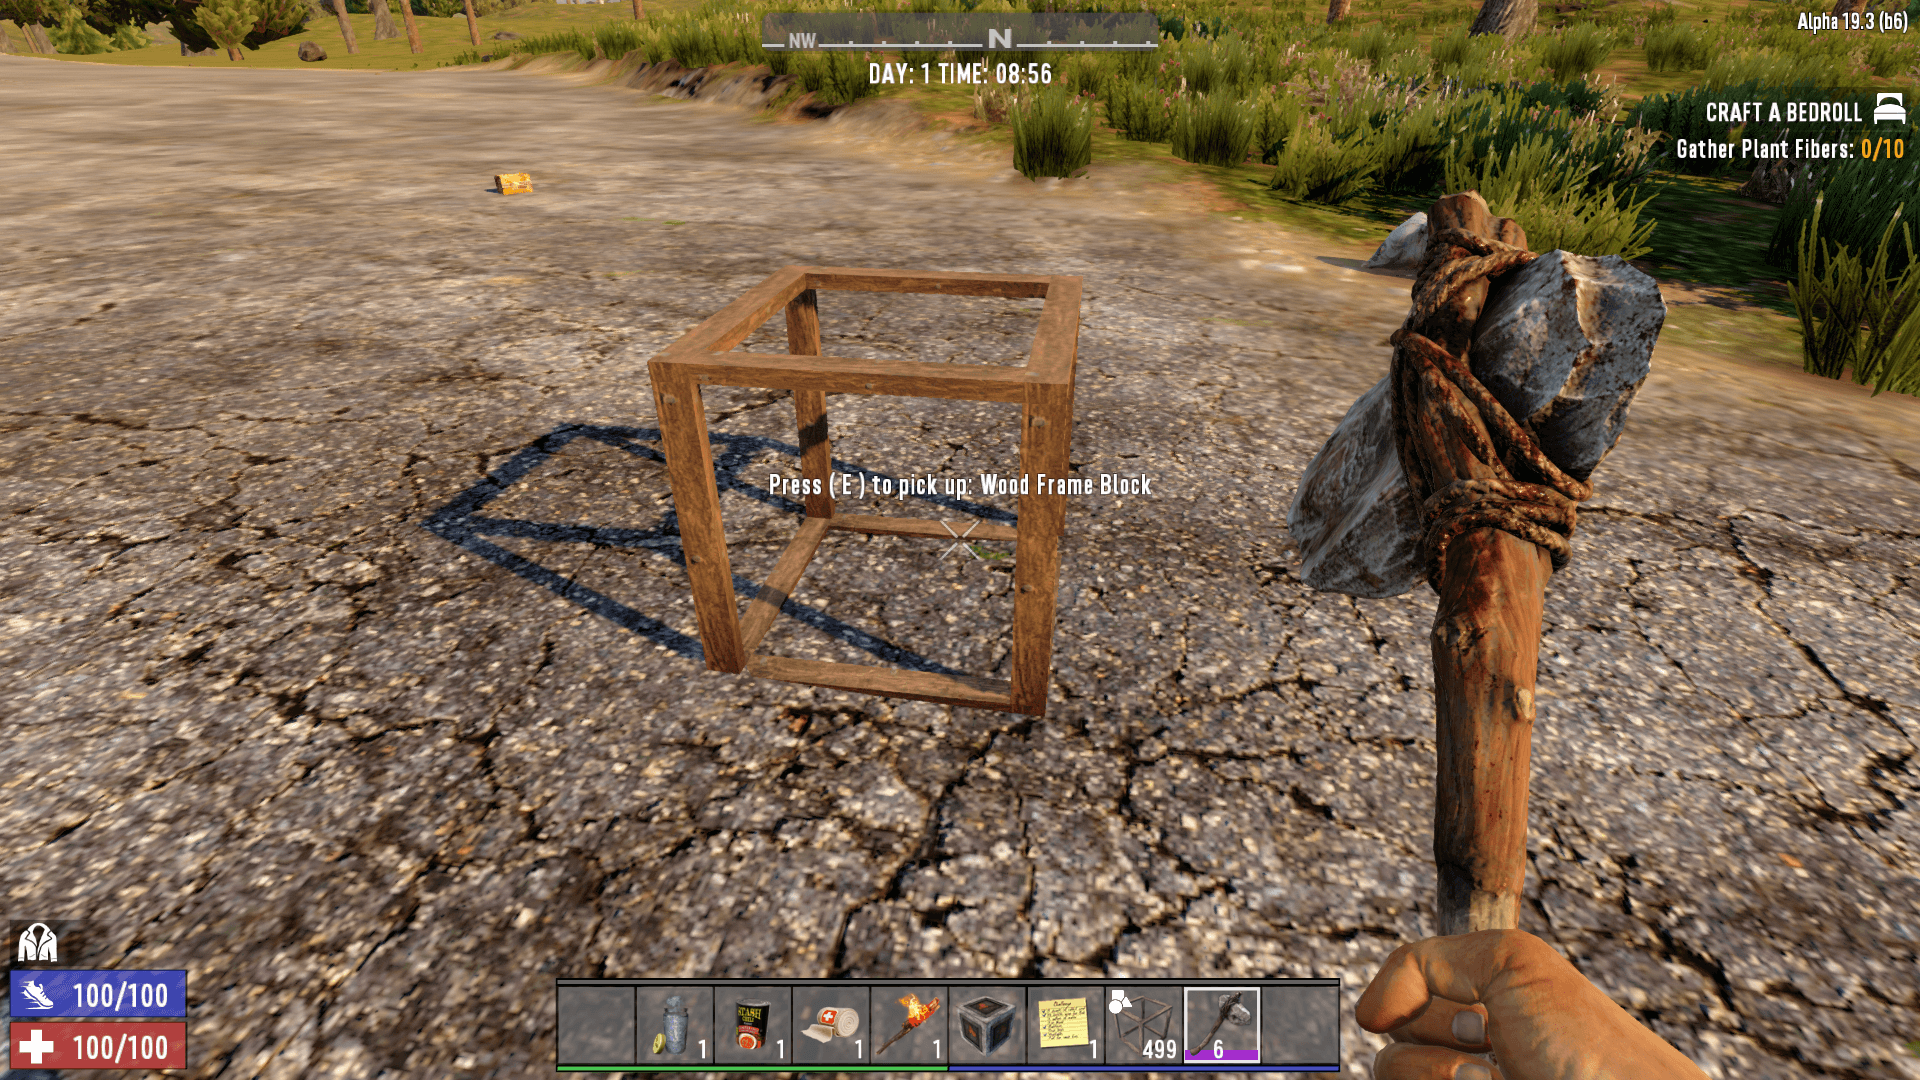 How to Upgrade Wood Frames in 7 Days to Die